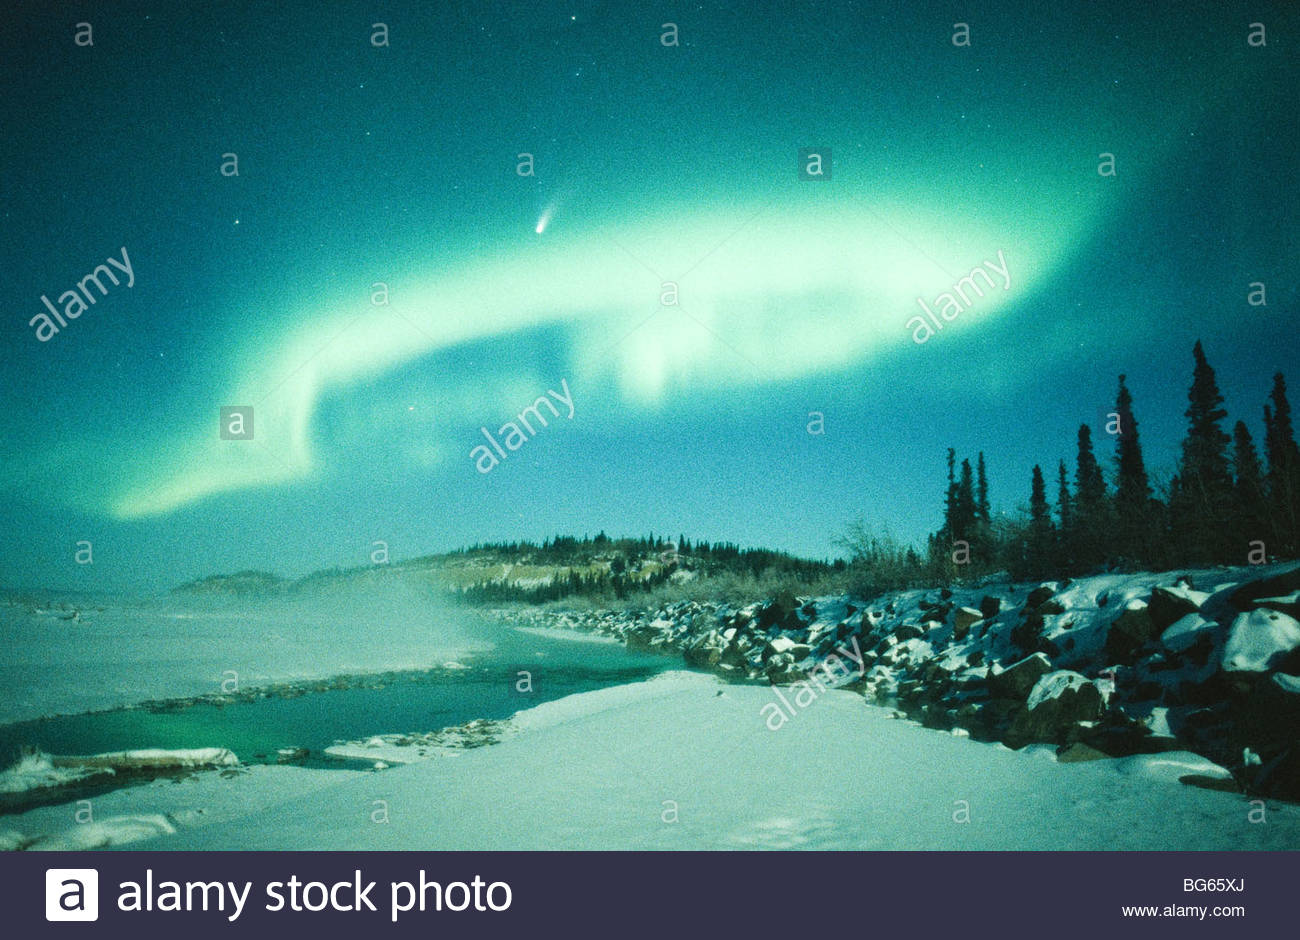 Alaska. Big Delta. The comet Hale-Bopp shines brightly through northern lights over the Delta River. - Stock Image